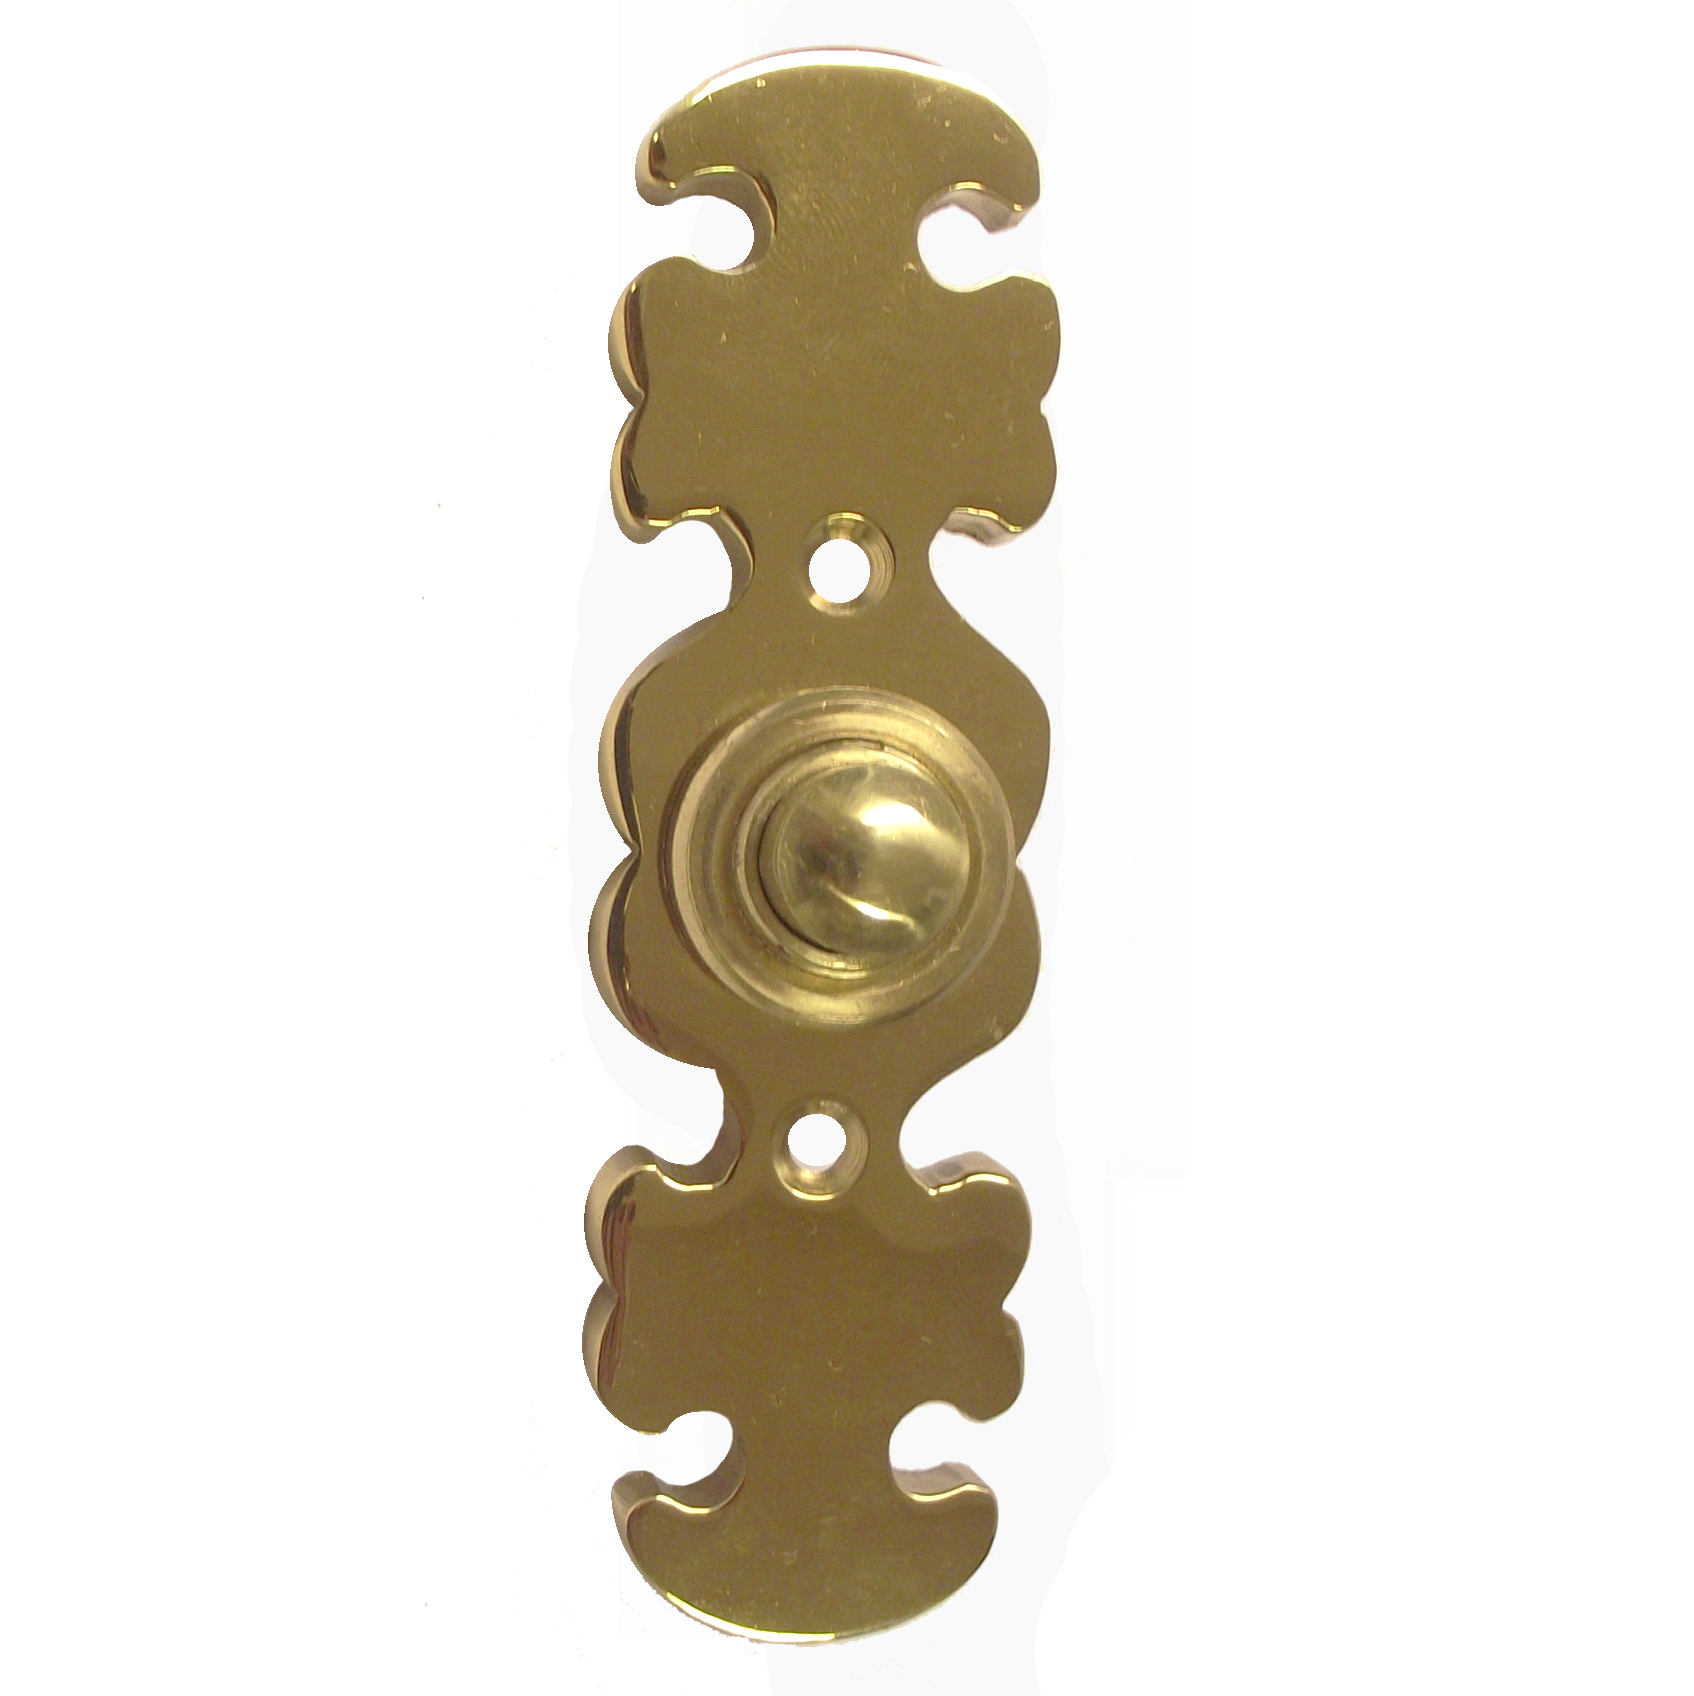 Oakleaf Brass Doorbell